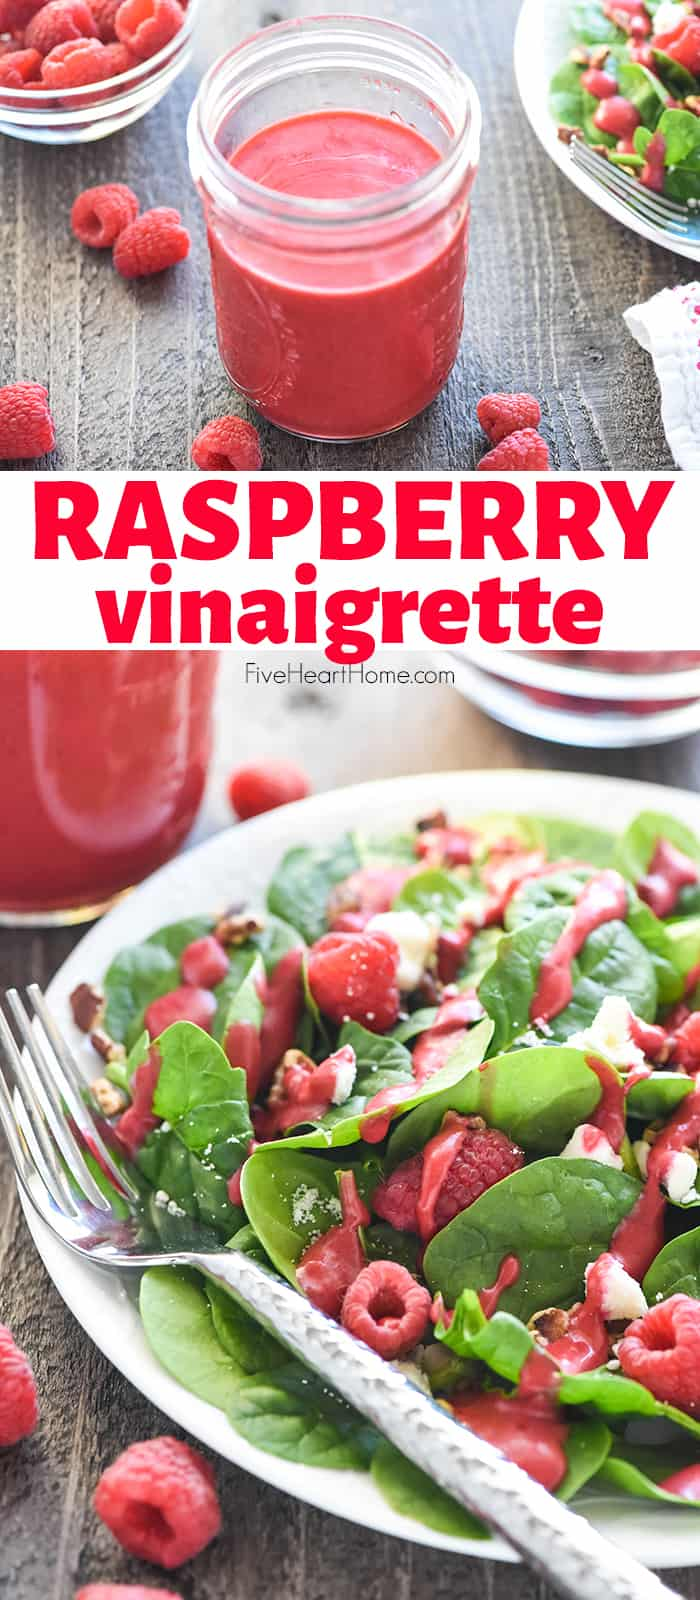 Raspberry Vinaigrette ~ a silky-smooth, sweet and tangy homemade dressing that's easy to make and delicious over a variety of salads! | FiveHeartHome.com via @fivehearthome